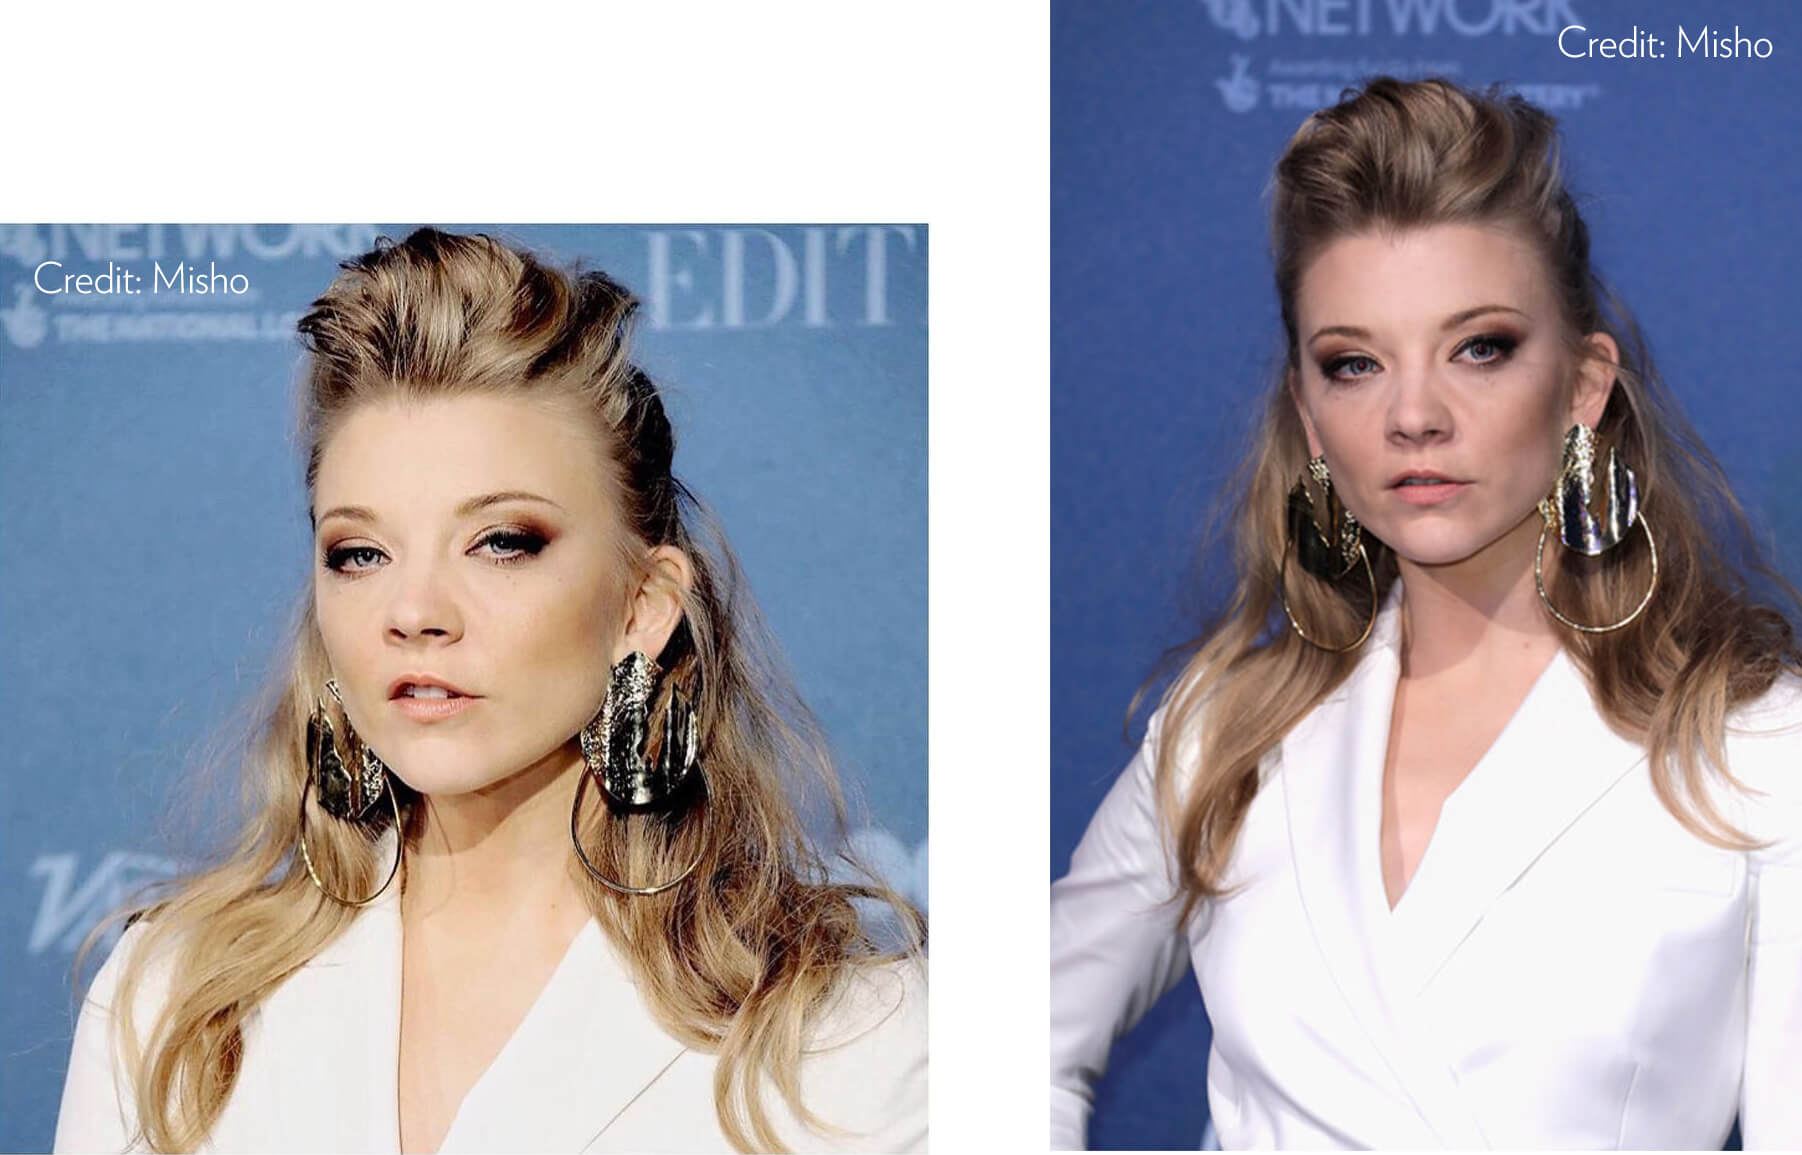 Svenklas_Journal_Friends_Of_Svenklas_Misho_Natalie_Dormer